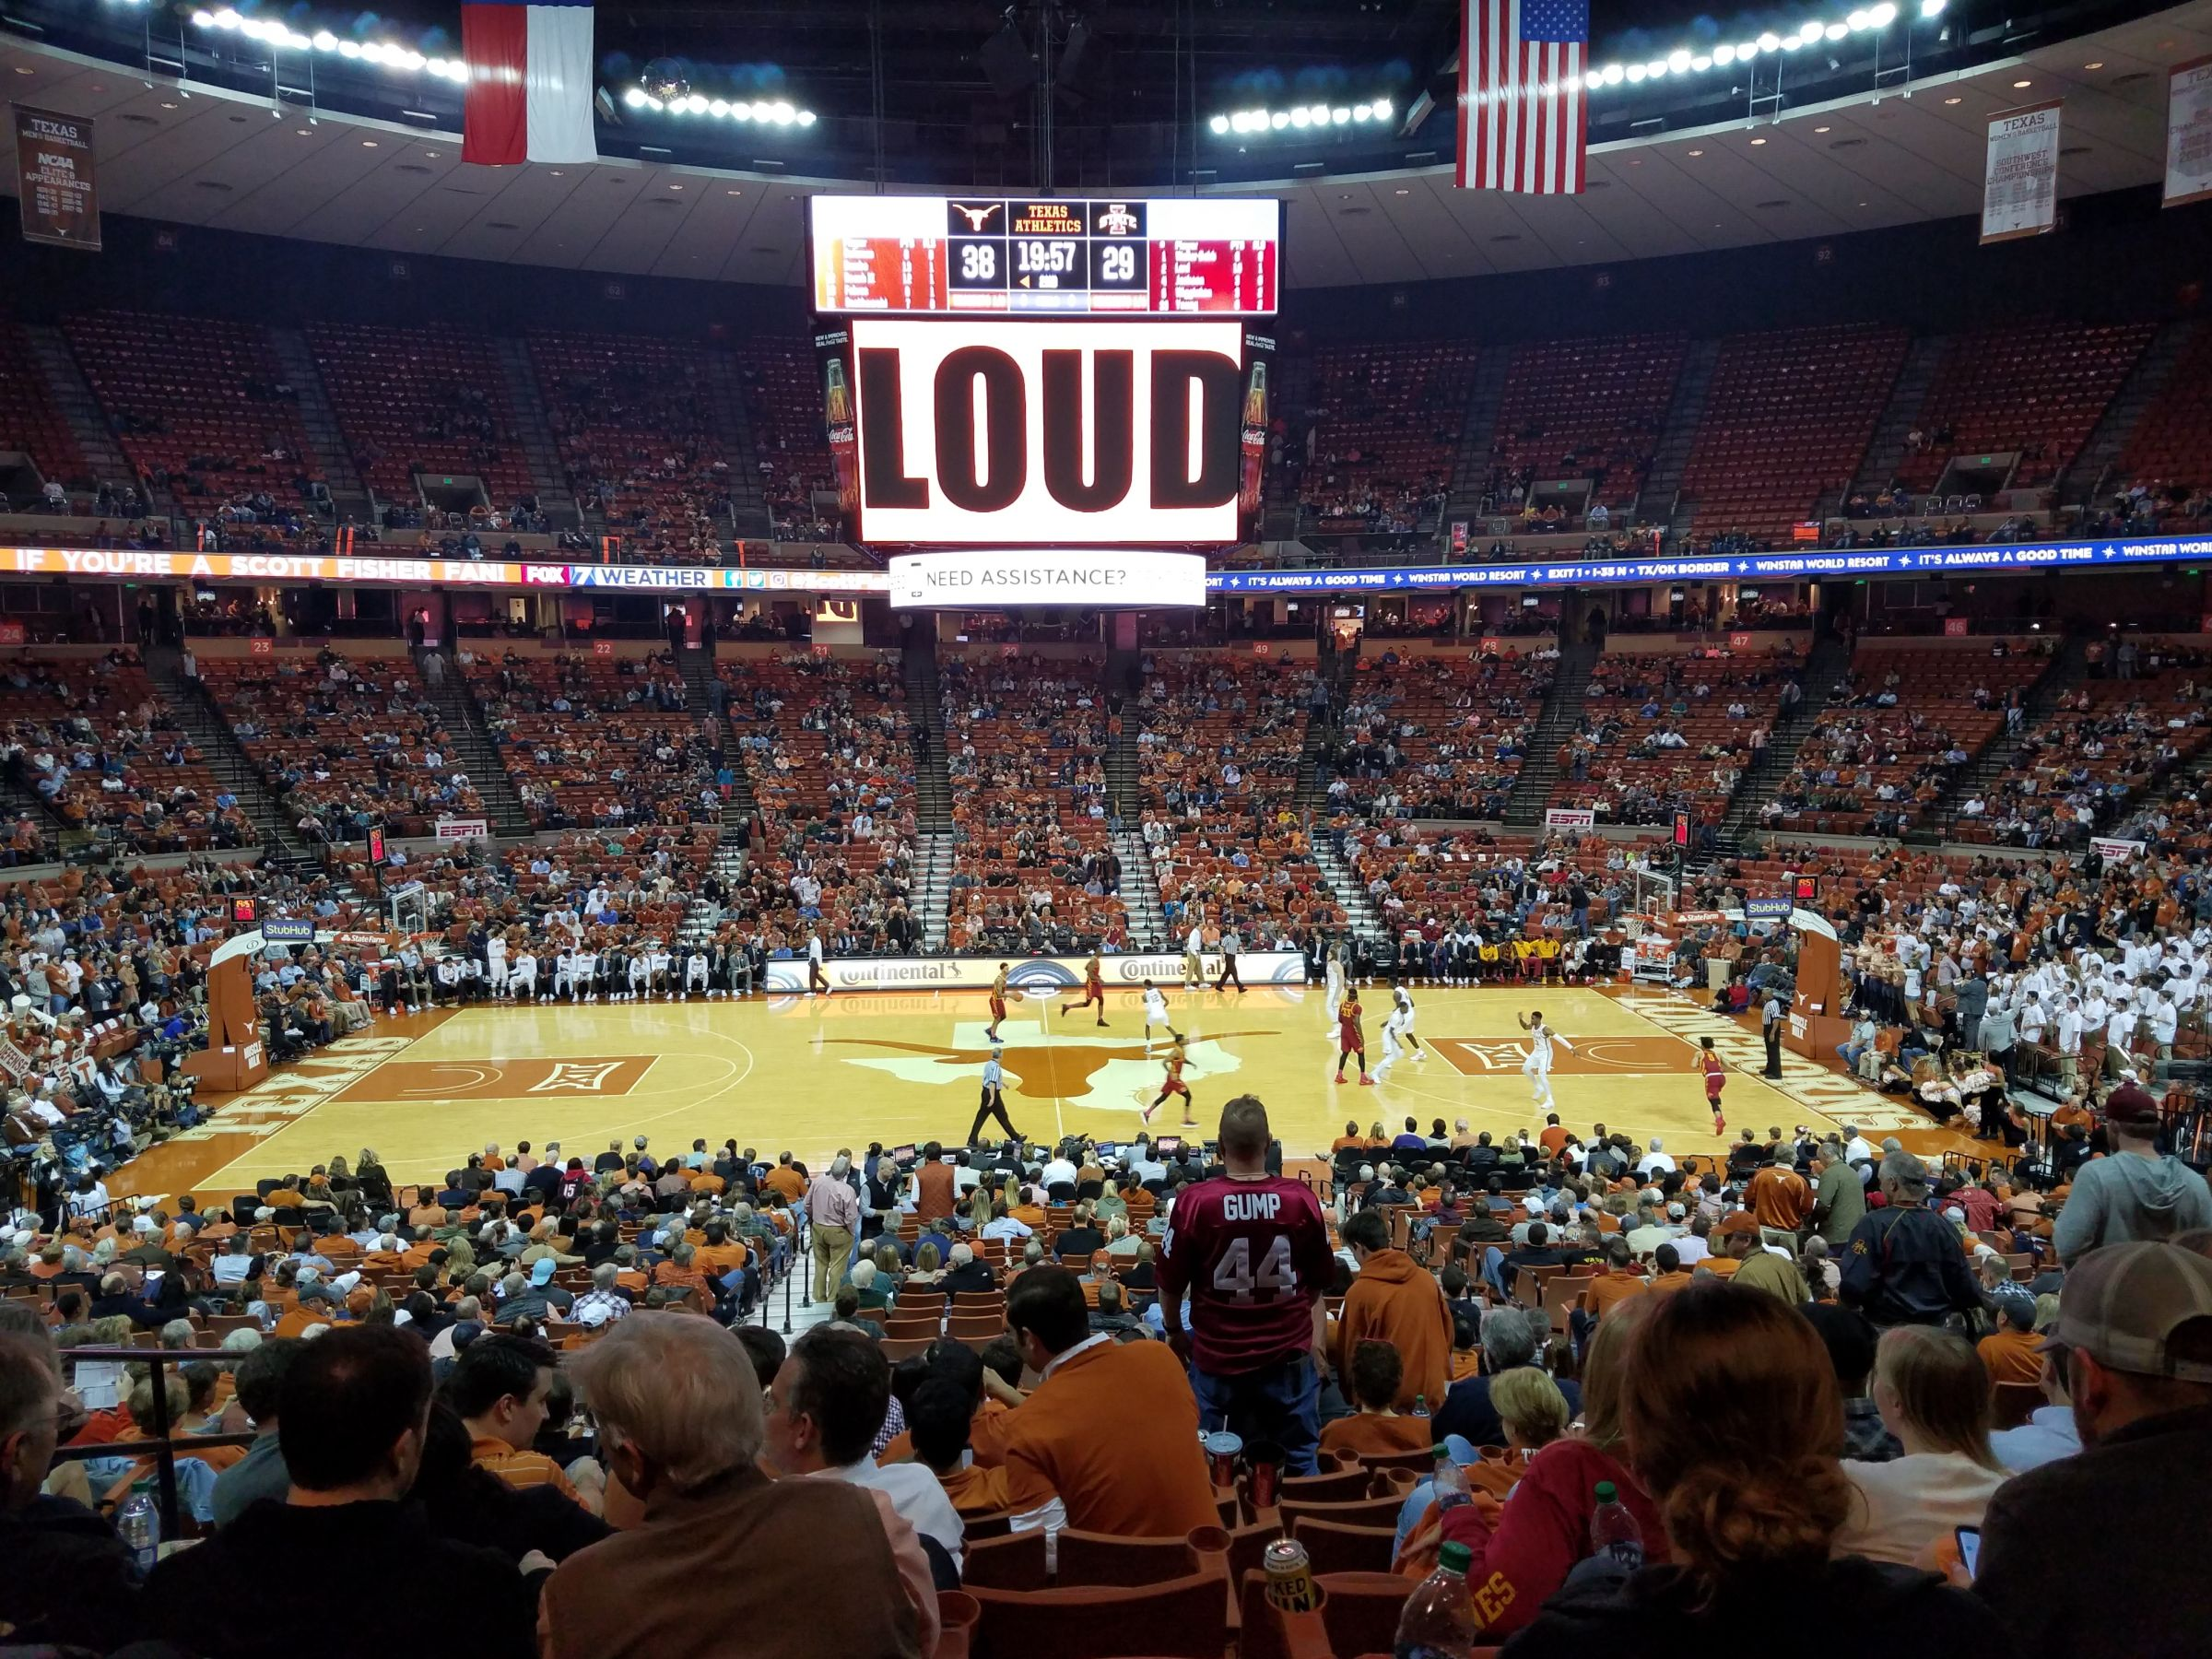 Seat View for Frank Erwin Center Section 35, Row 30